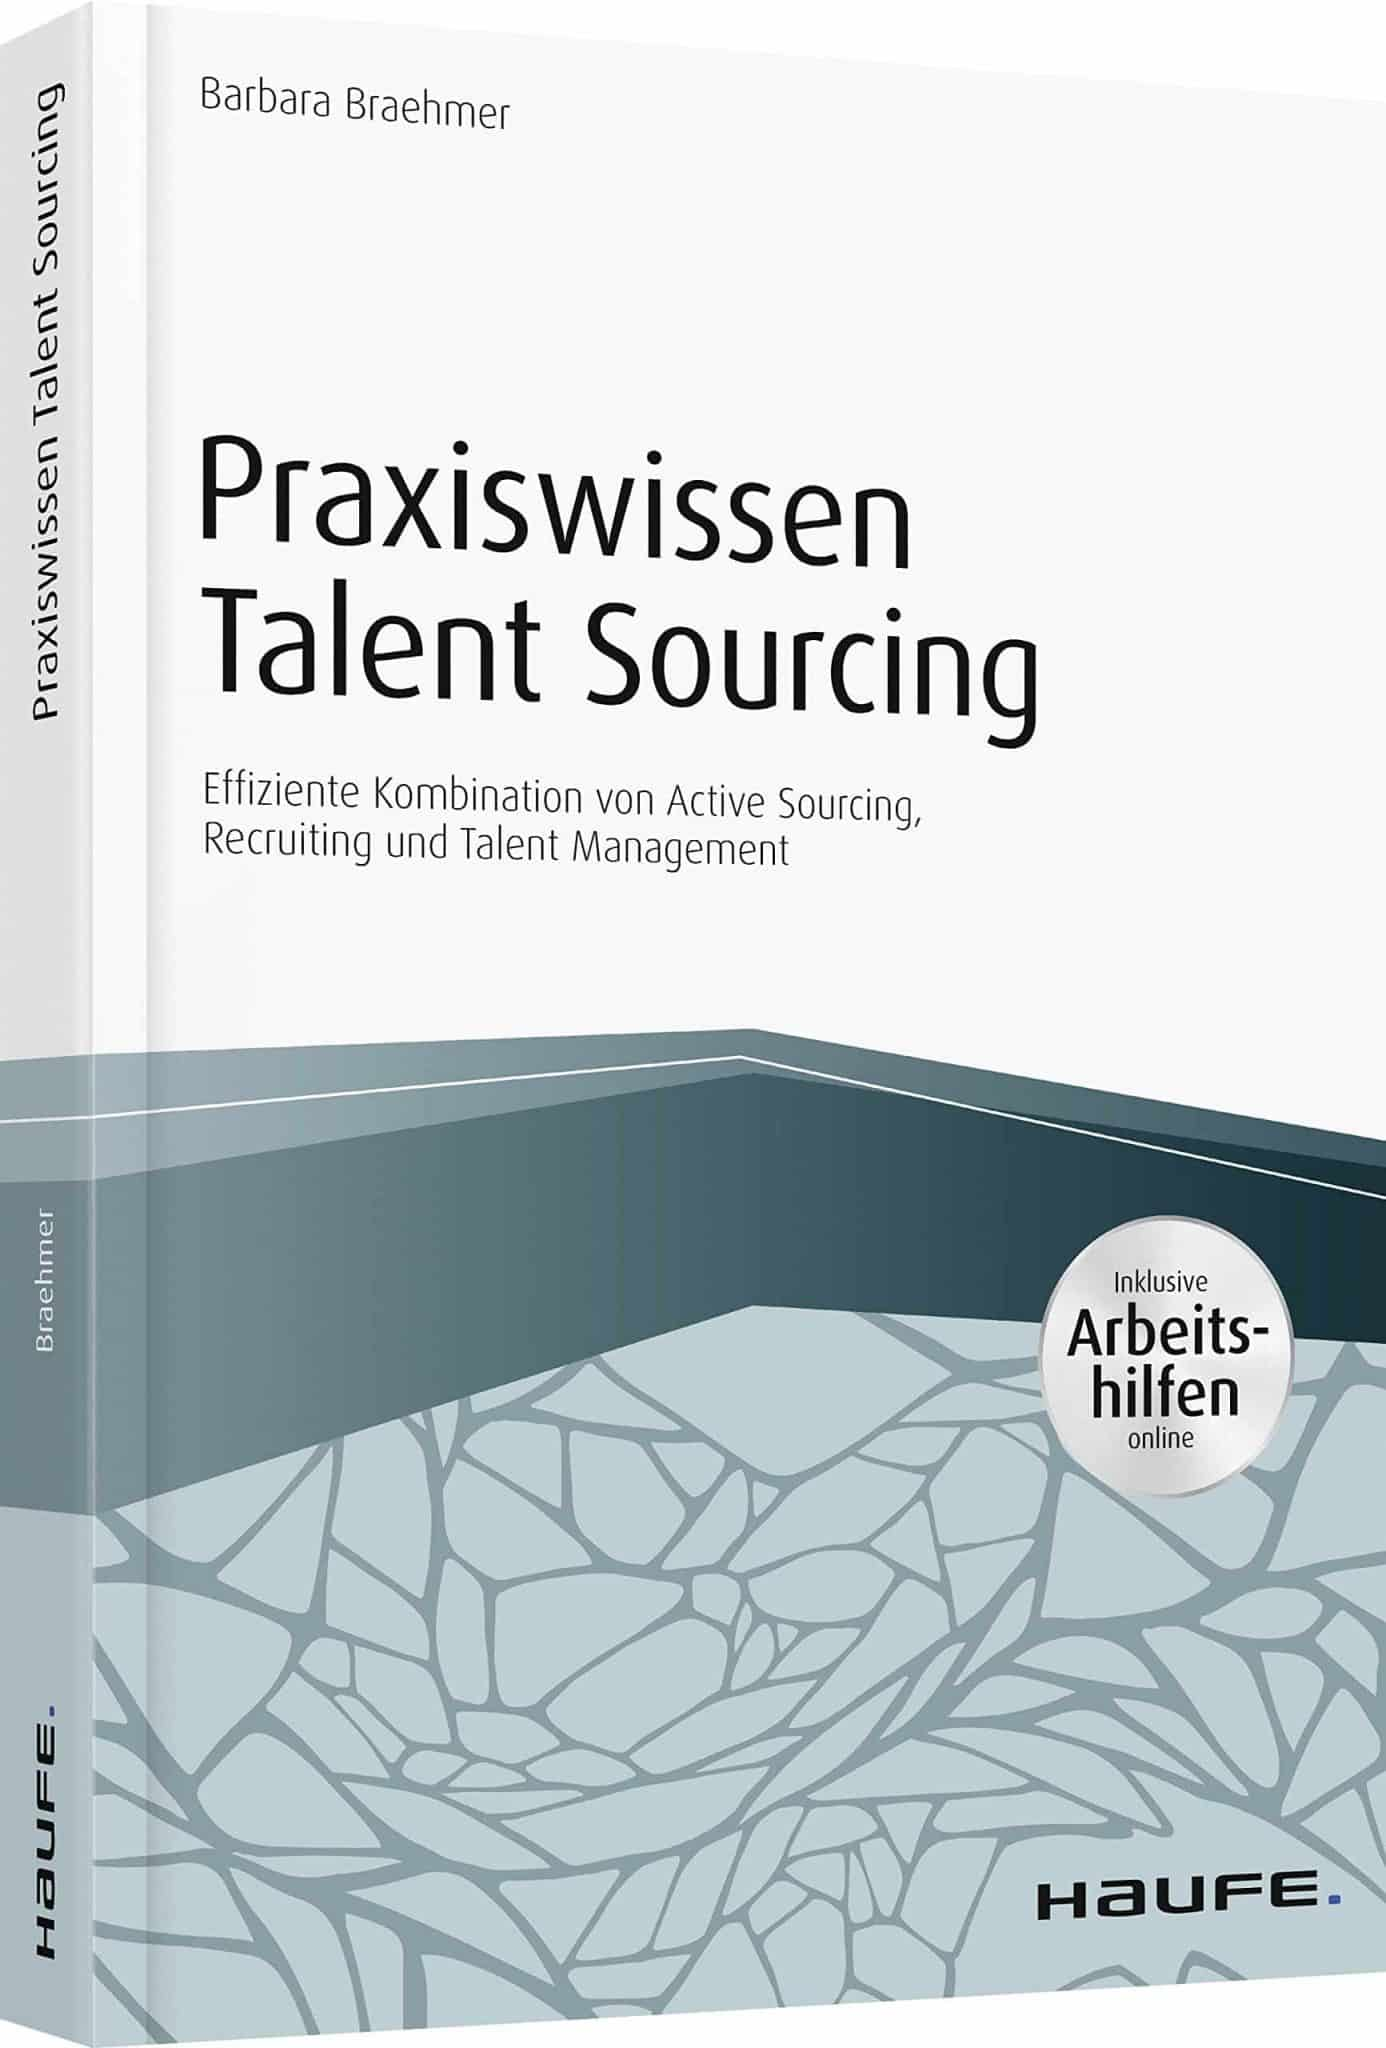 praxiswissen talent sourcing scaled